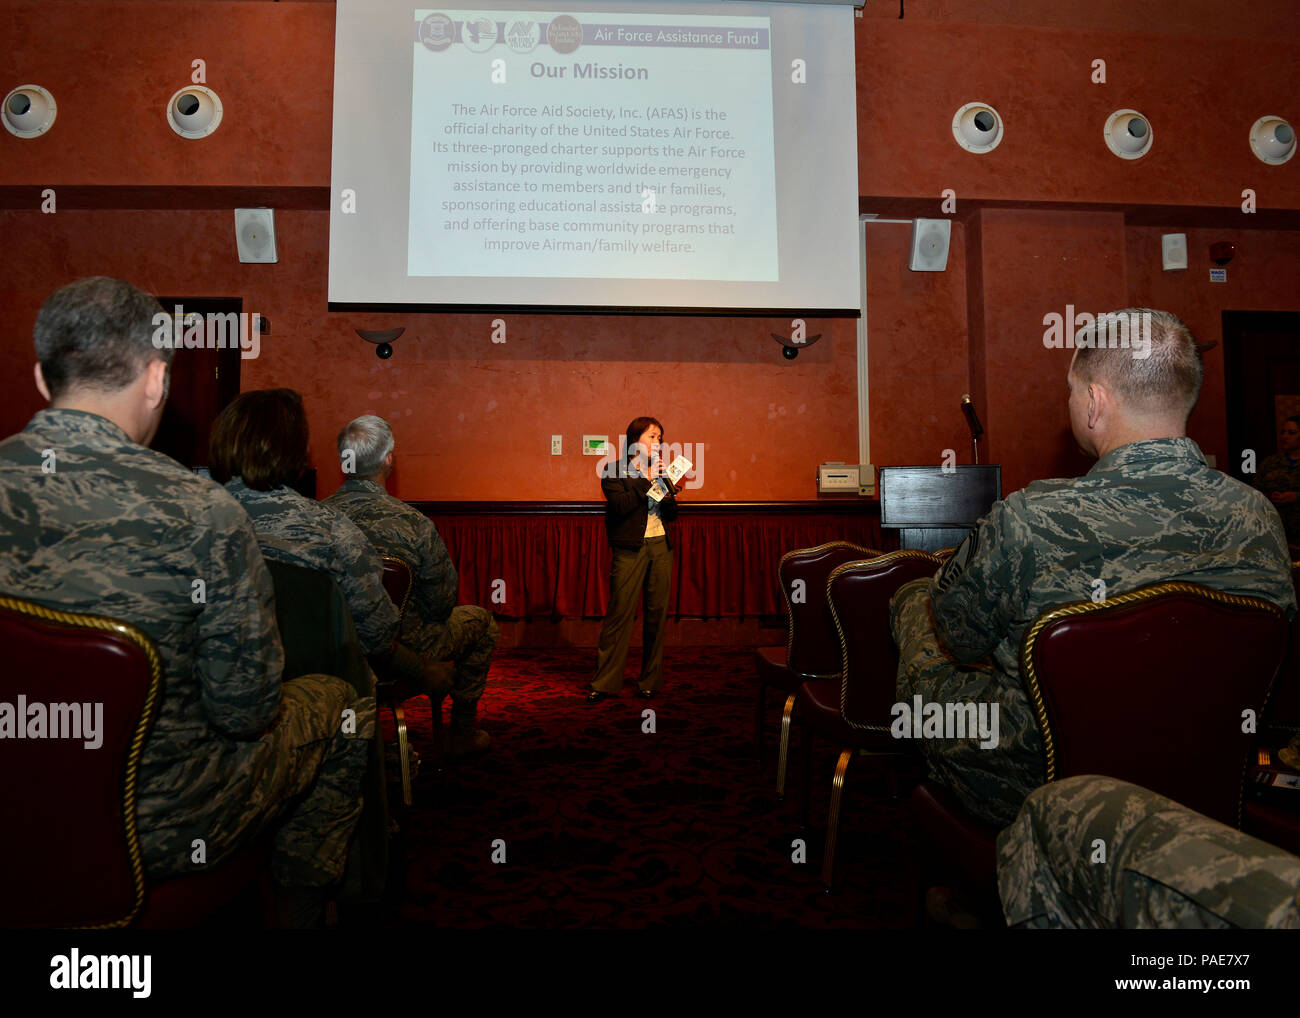 Toni Geronimo, 31st Force Support Squadron community readiness consultant, speaks to attendees at the Air Force Assistance Fund kick-off breakfast, March 18, 2016, at Aviano Air Base, Italy. The AFAF campaign is held from March 21 to April 29, 2016, and helps Airmen and their families in need of financial help. (U.S. Air Force photo by Airman 1st Class Cary Smith/Released) - Stock Image